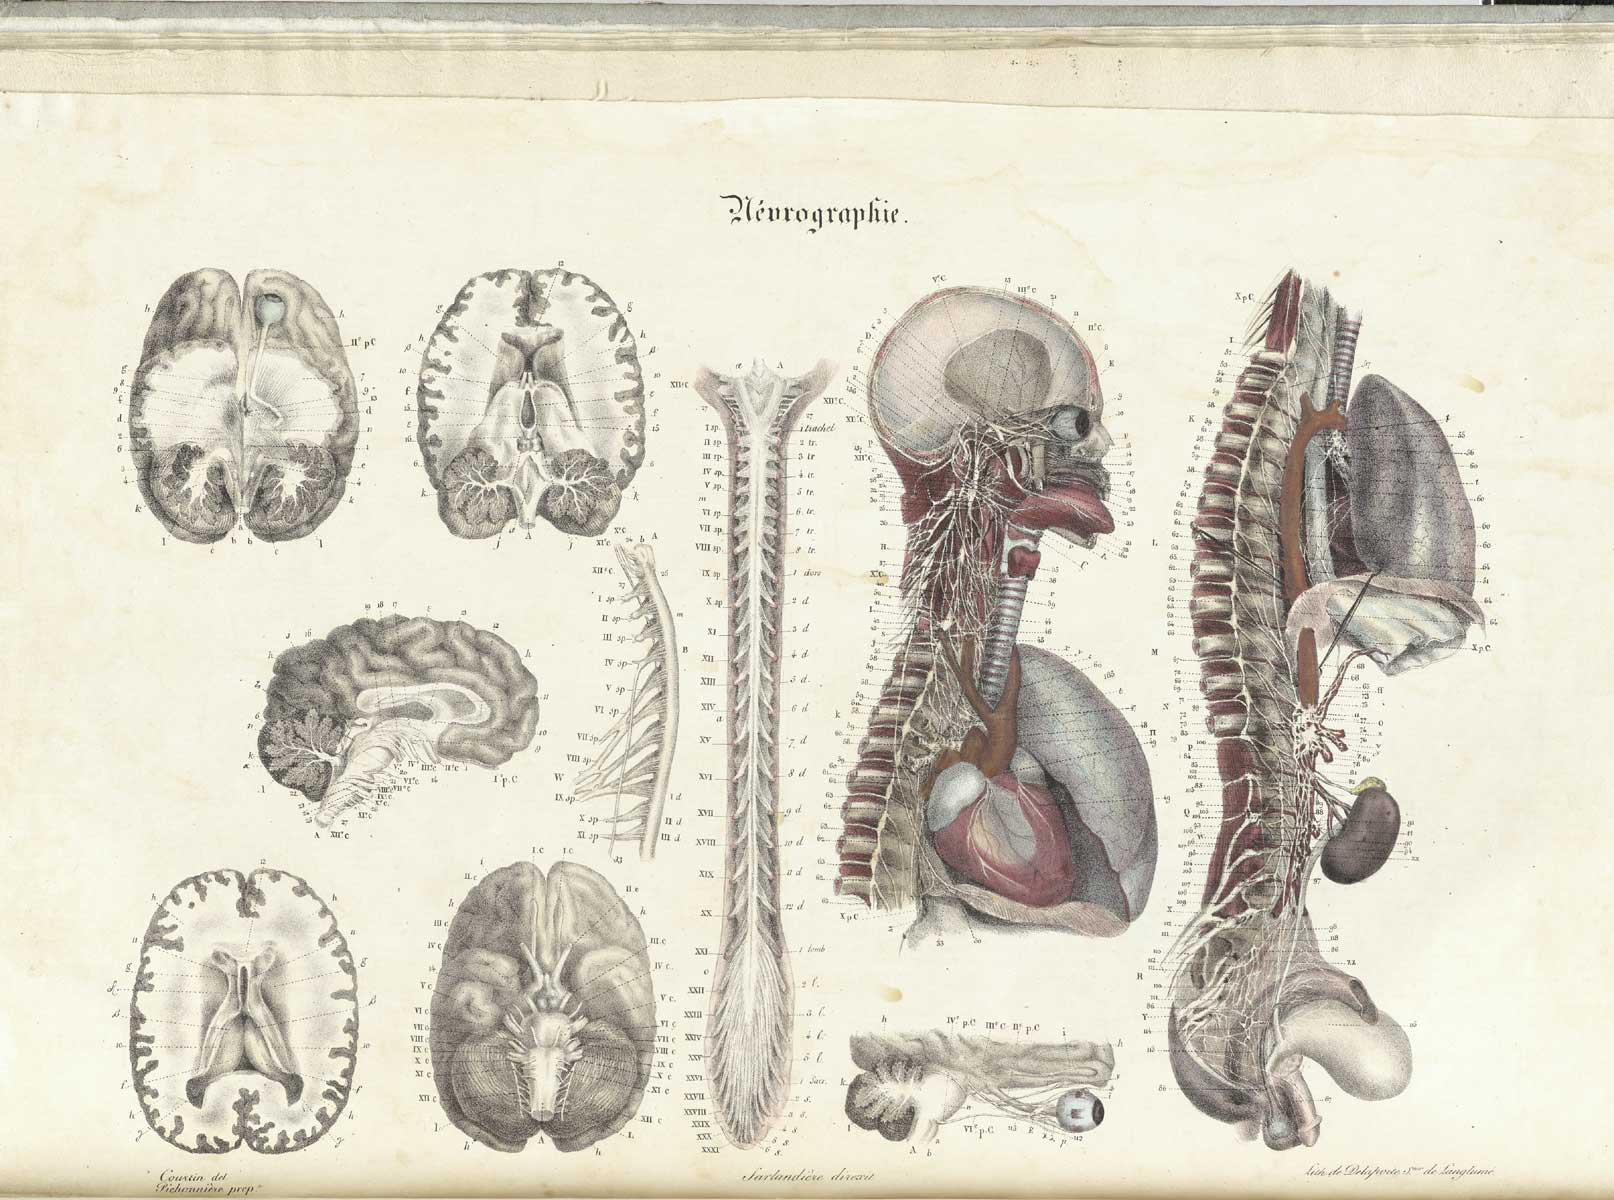 17 Leaves Of Text And 15 Color Lithographed Plates Depicting Human Anatomy Based Upon Sarlandieres Dissections As Stated On The Title Page